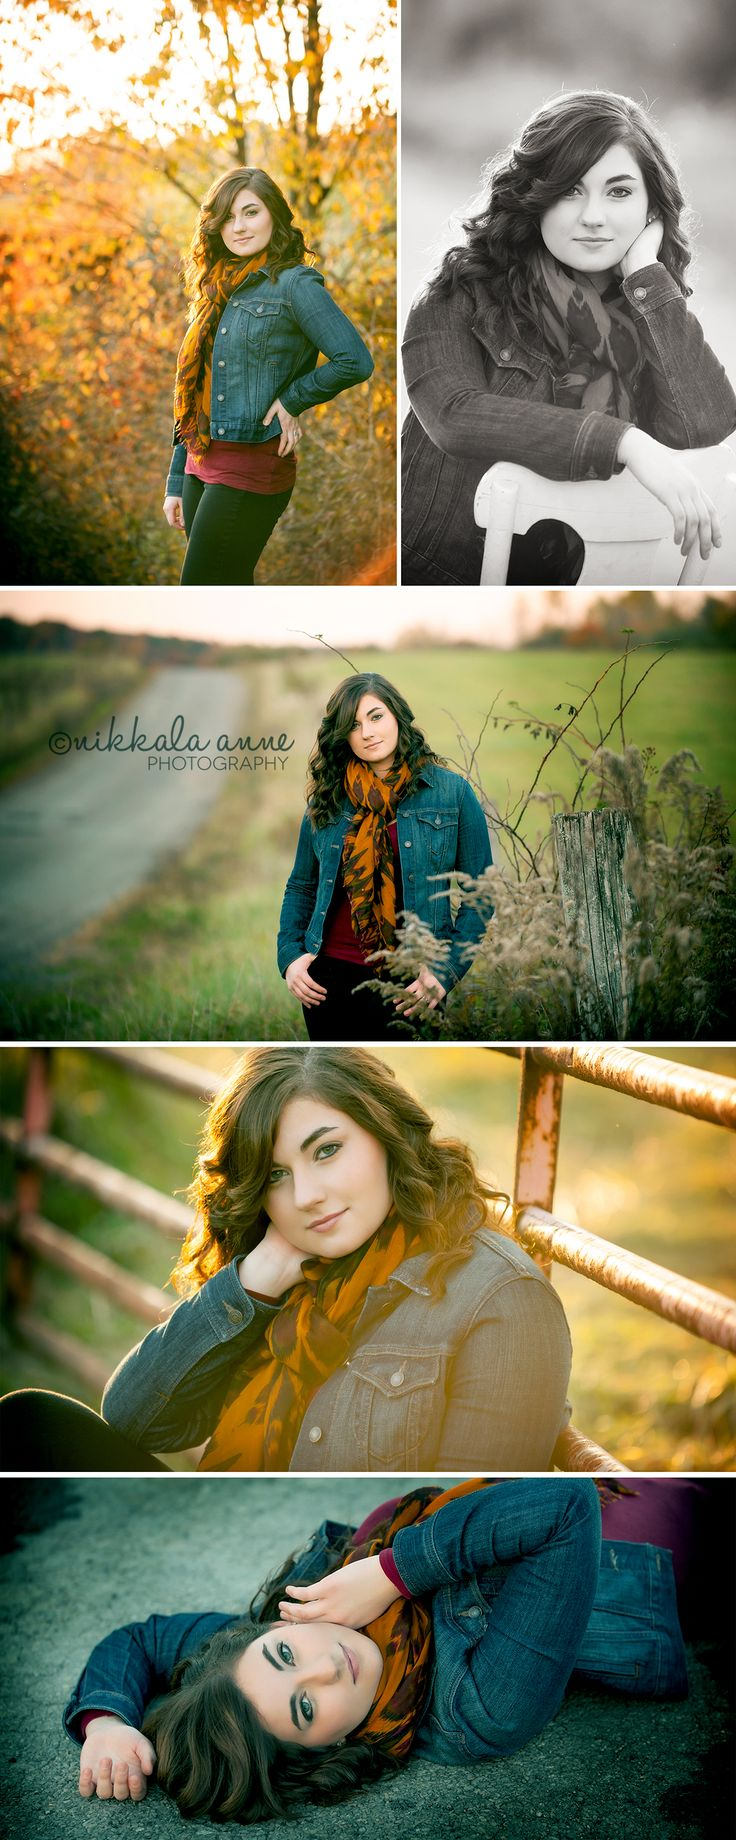 Autumn Senior | Samantha | Nikkala Anne Photographysenior girl photo session idea photography inspiration country farm